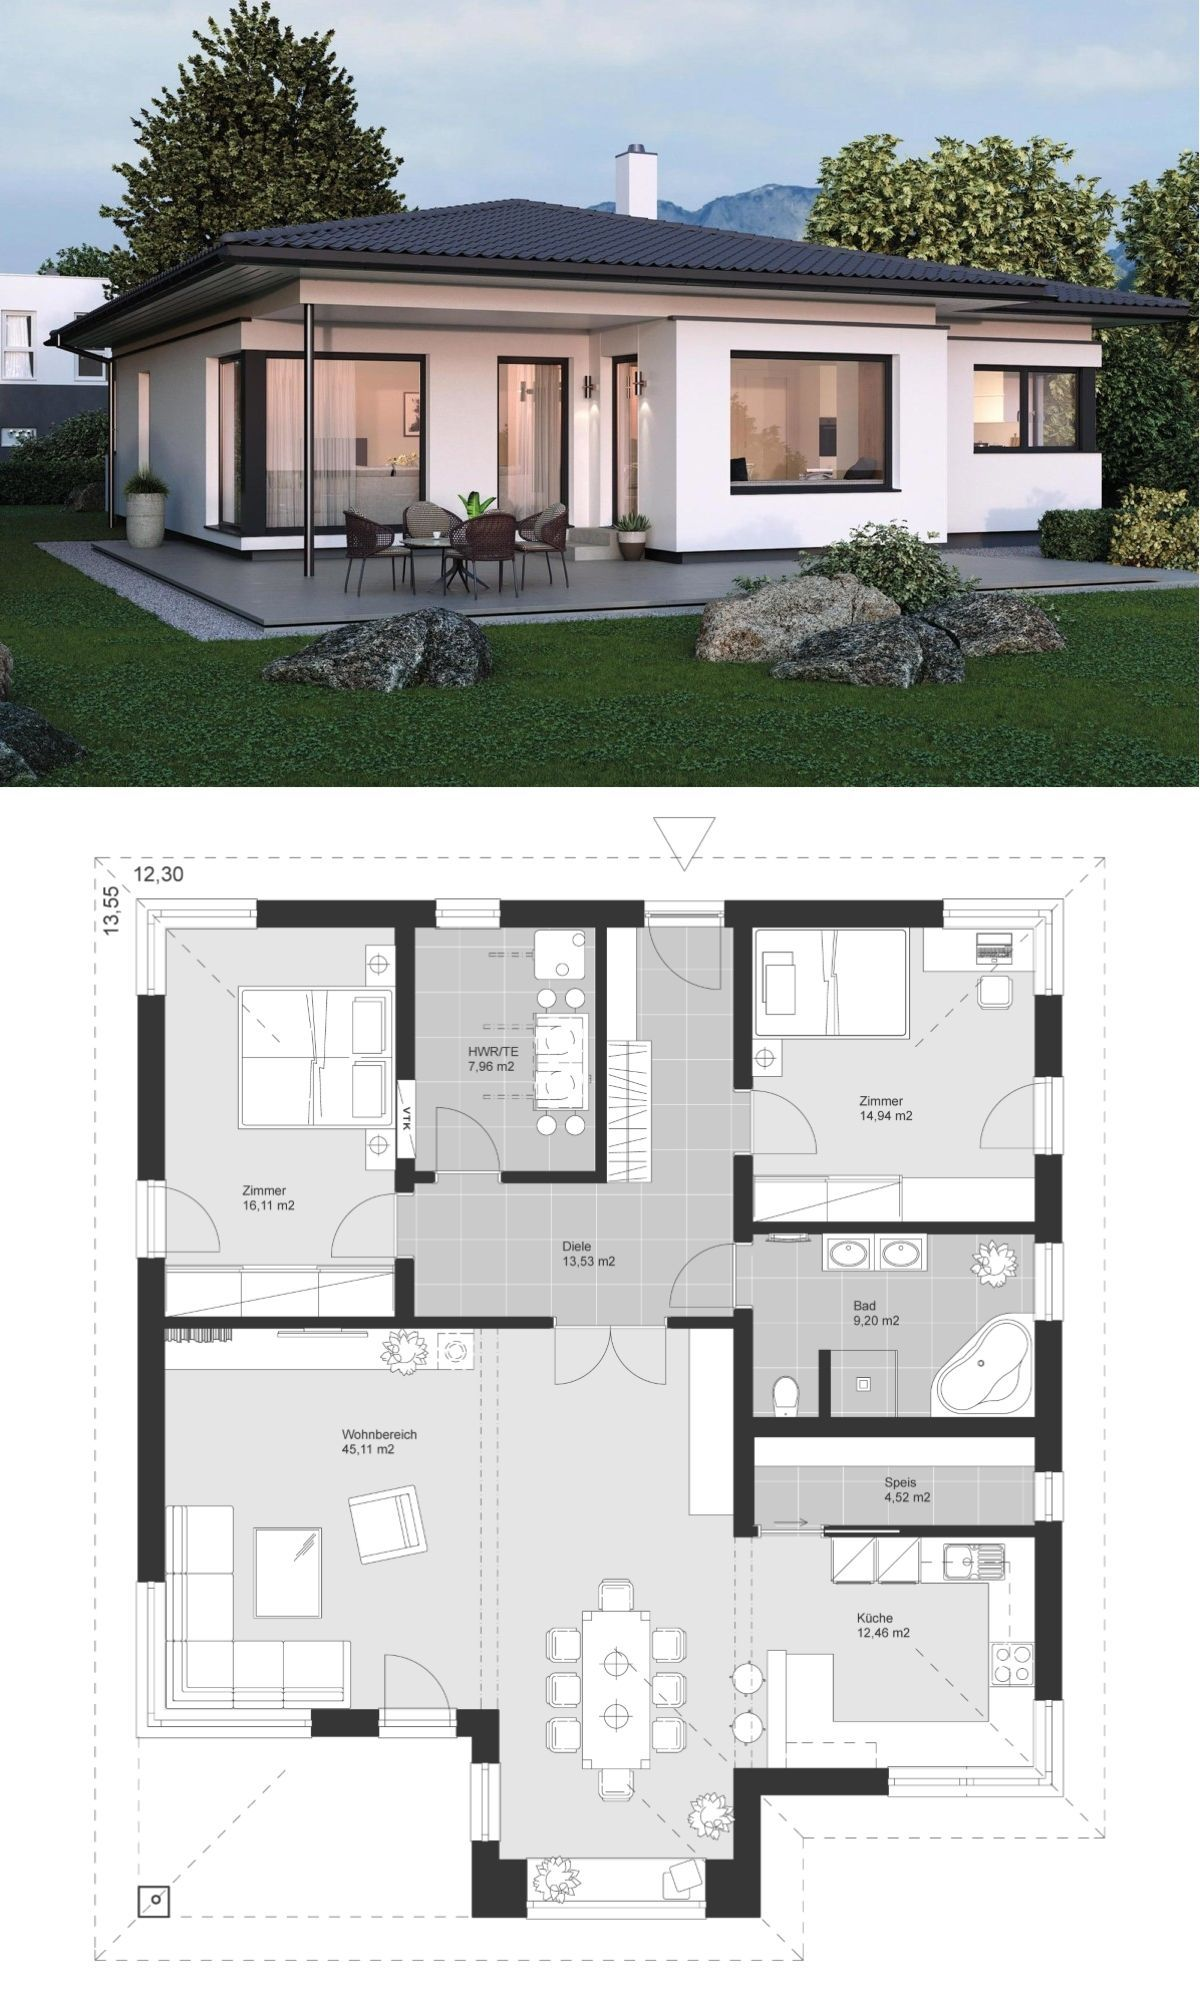 Design bungalow modern mit walmdach architektur 3 zimmer for Fertighaus winkelbungalow